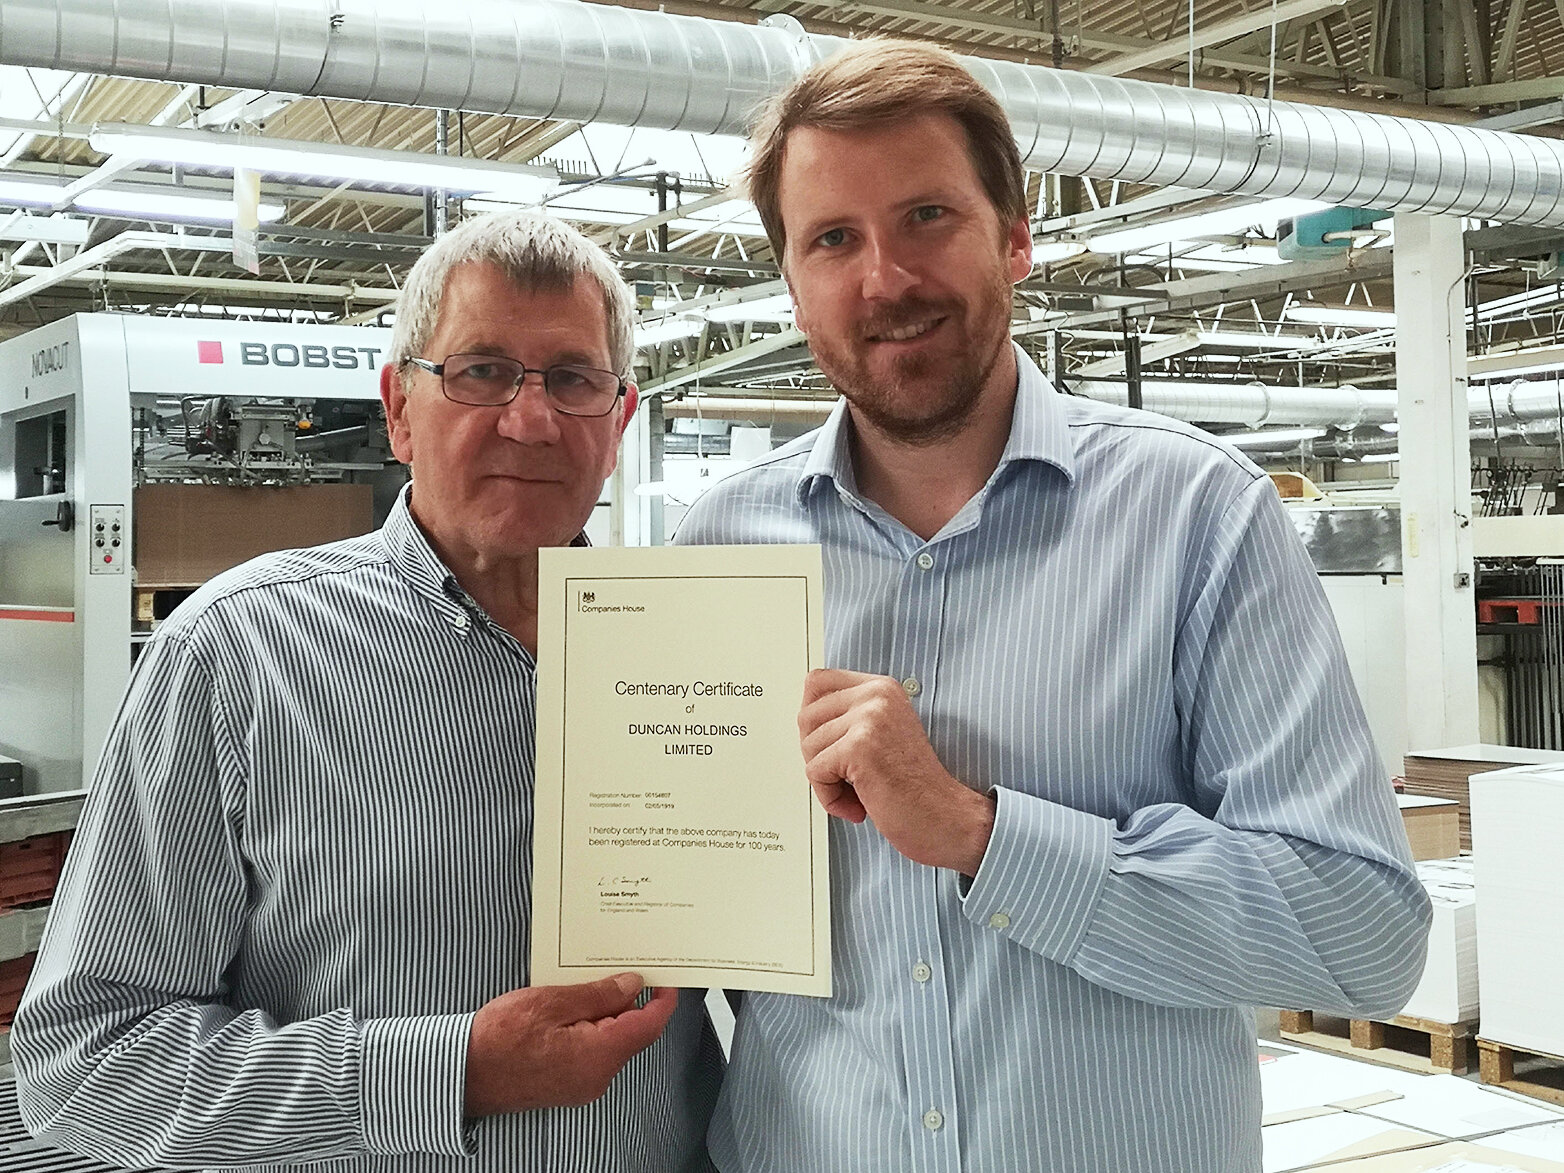 Pictured: Bill Duncan, Managing Director and James Duncan, Deputy Managing Director with the Companies House Centenary Certificate